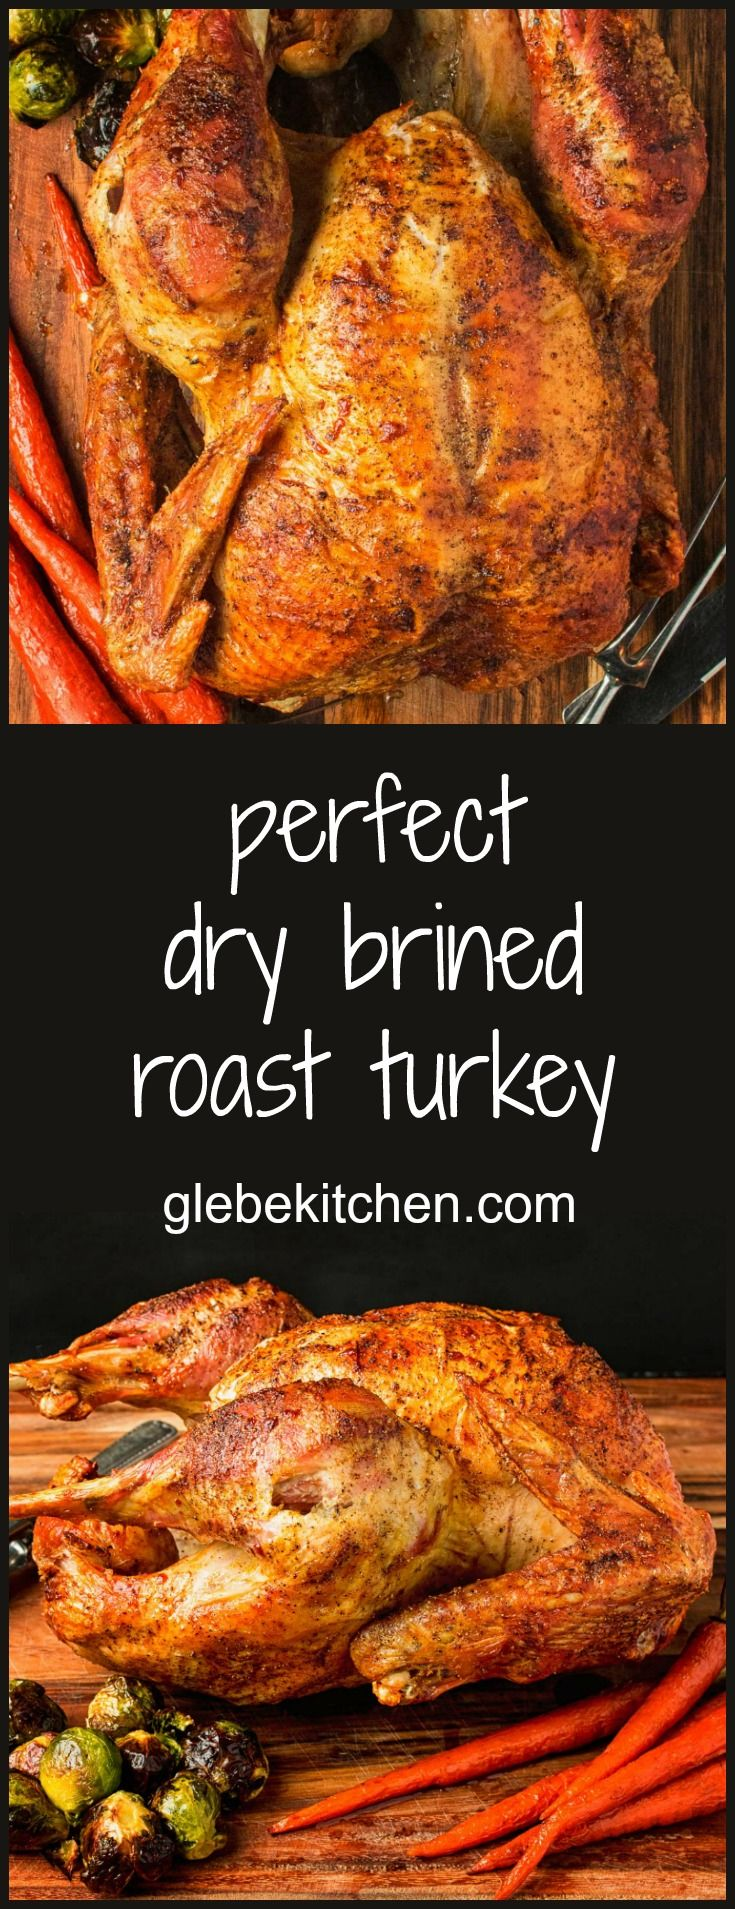 A few simple steps for perfect roast turkey every time!